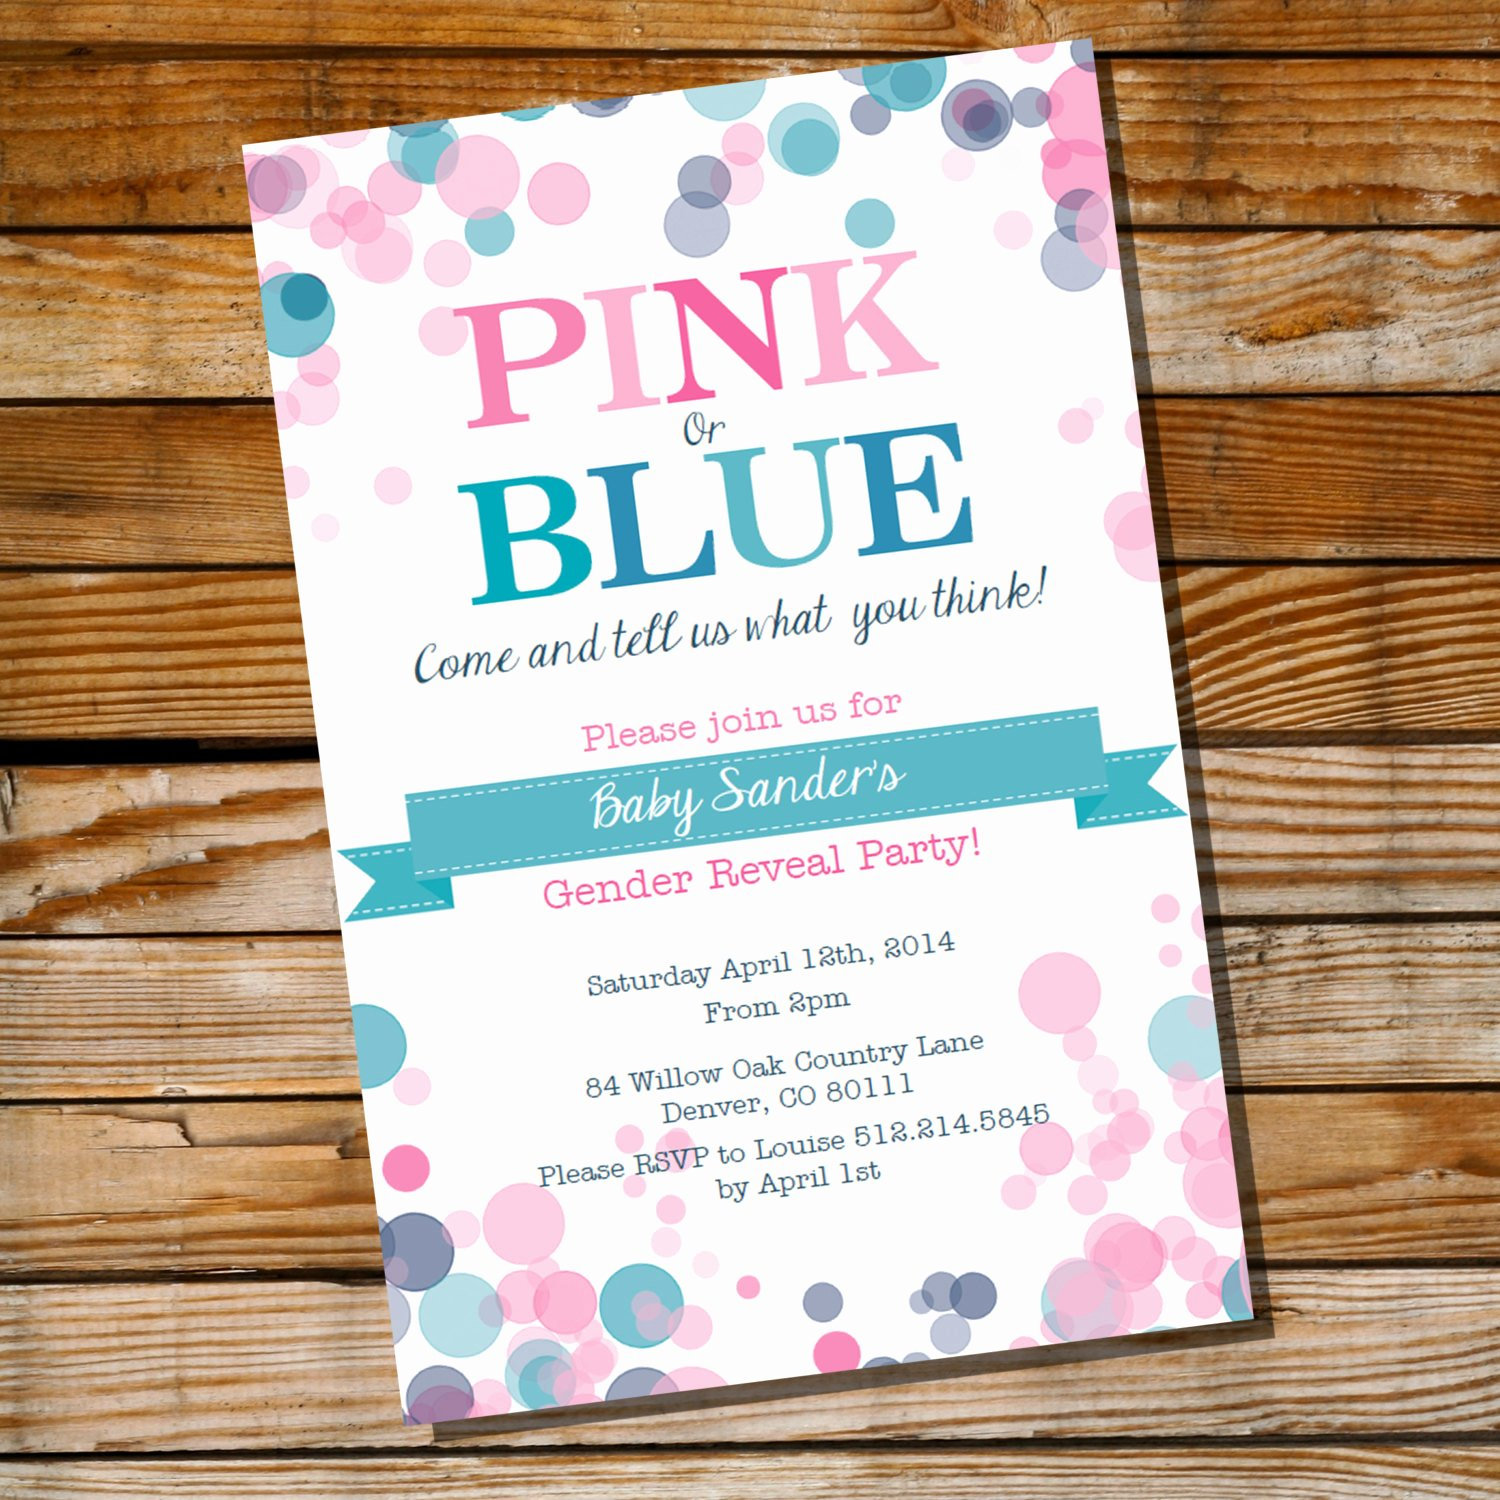 Gender Reveal Party Invitation Templates Unique Gender Reveal Party Invitation Pink or Blue Instantly